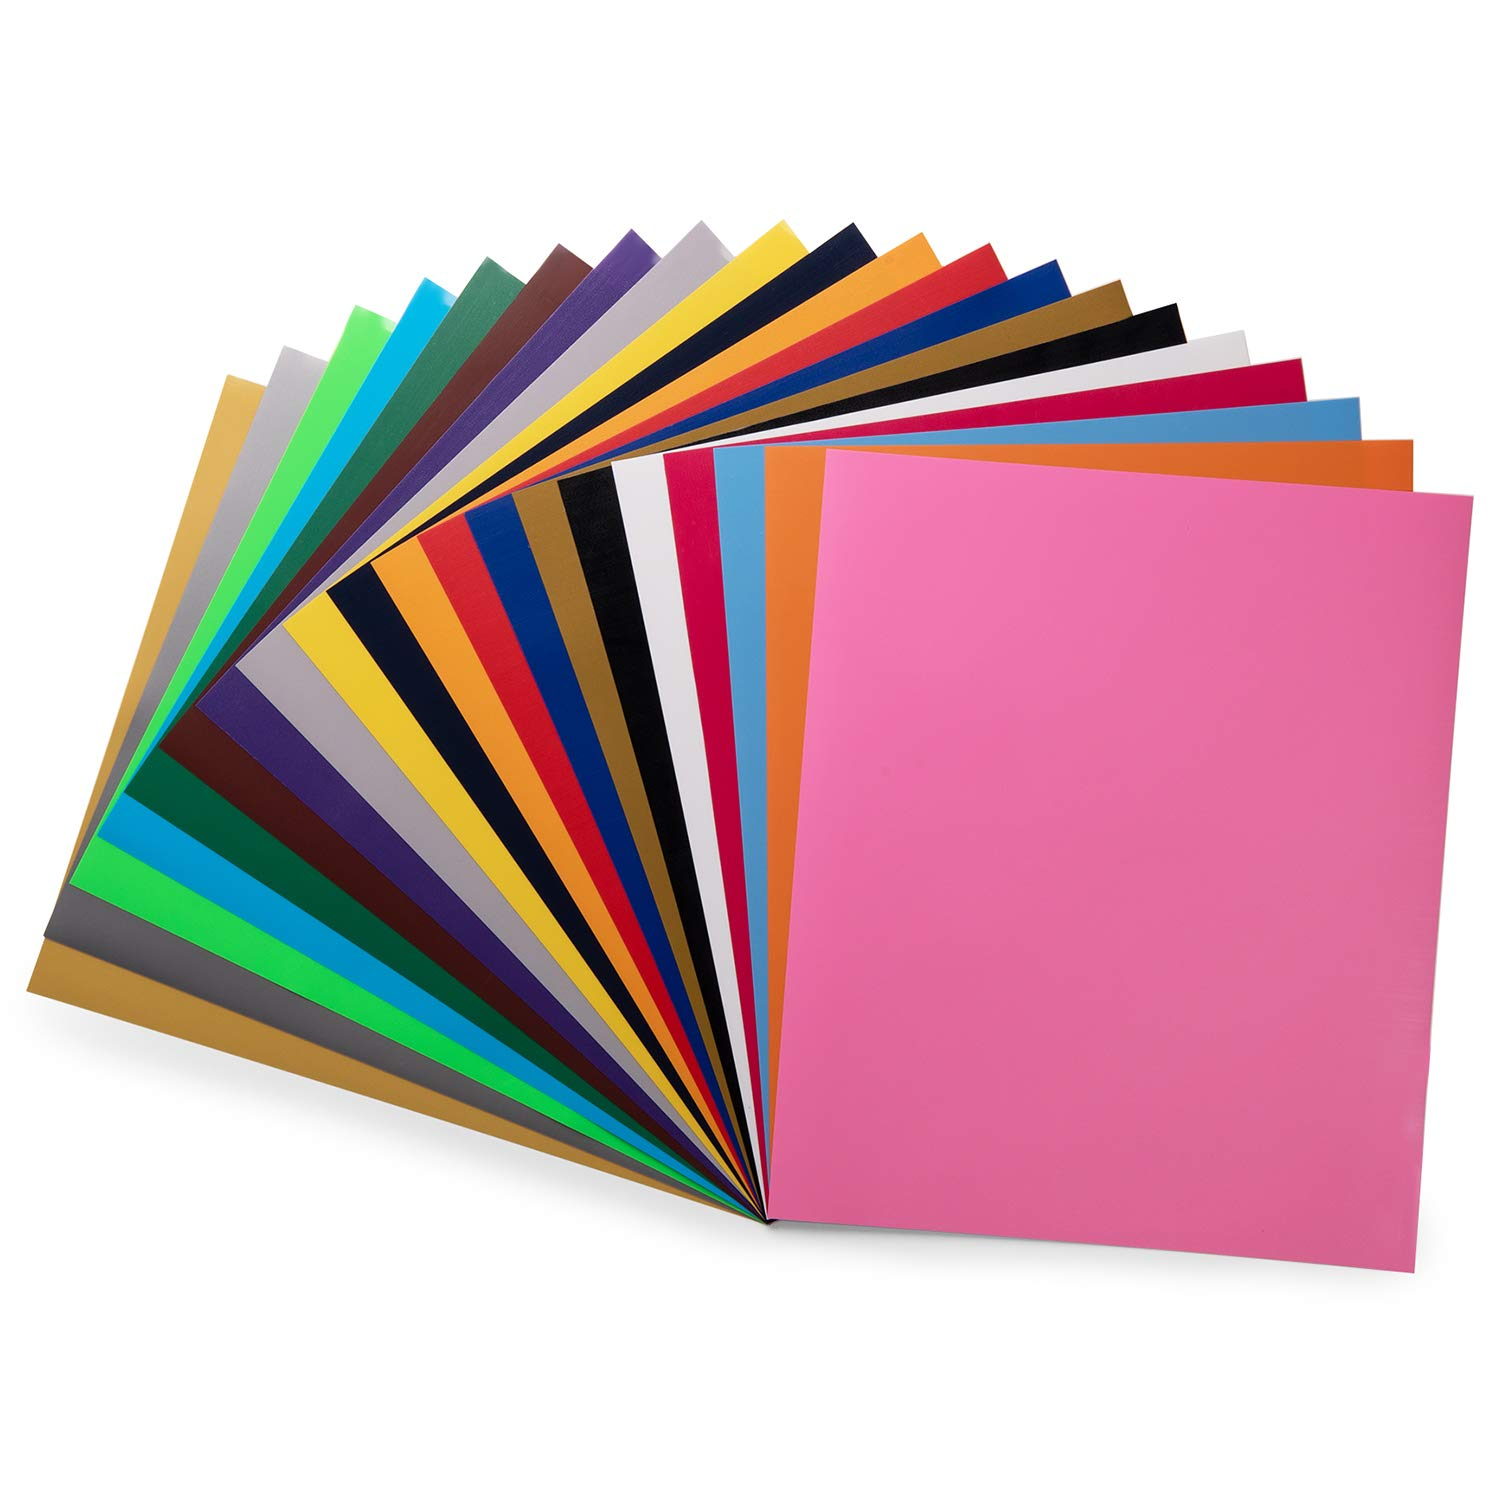 PU HTV Vinyl 20 Pack 20 Assorted Colors 12''x 10'' Sheets, Iron On Heat Transfer Vinyl Bundle for Cricut & Silhouette Cameo, Easy to Cut & Weed Adhesive Vinyl for Design DIY T-Shirts and Other Textiles by Honeytolly